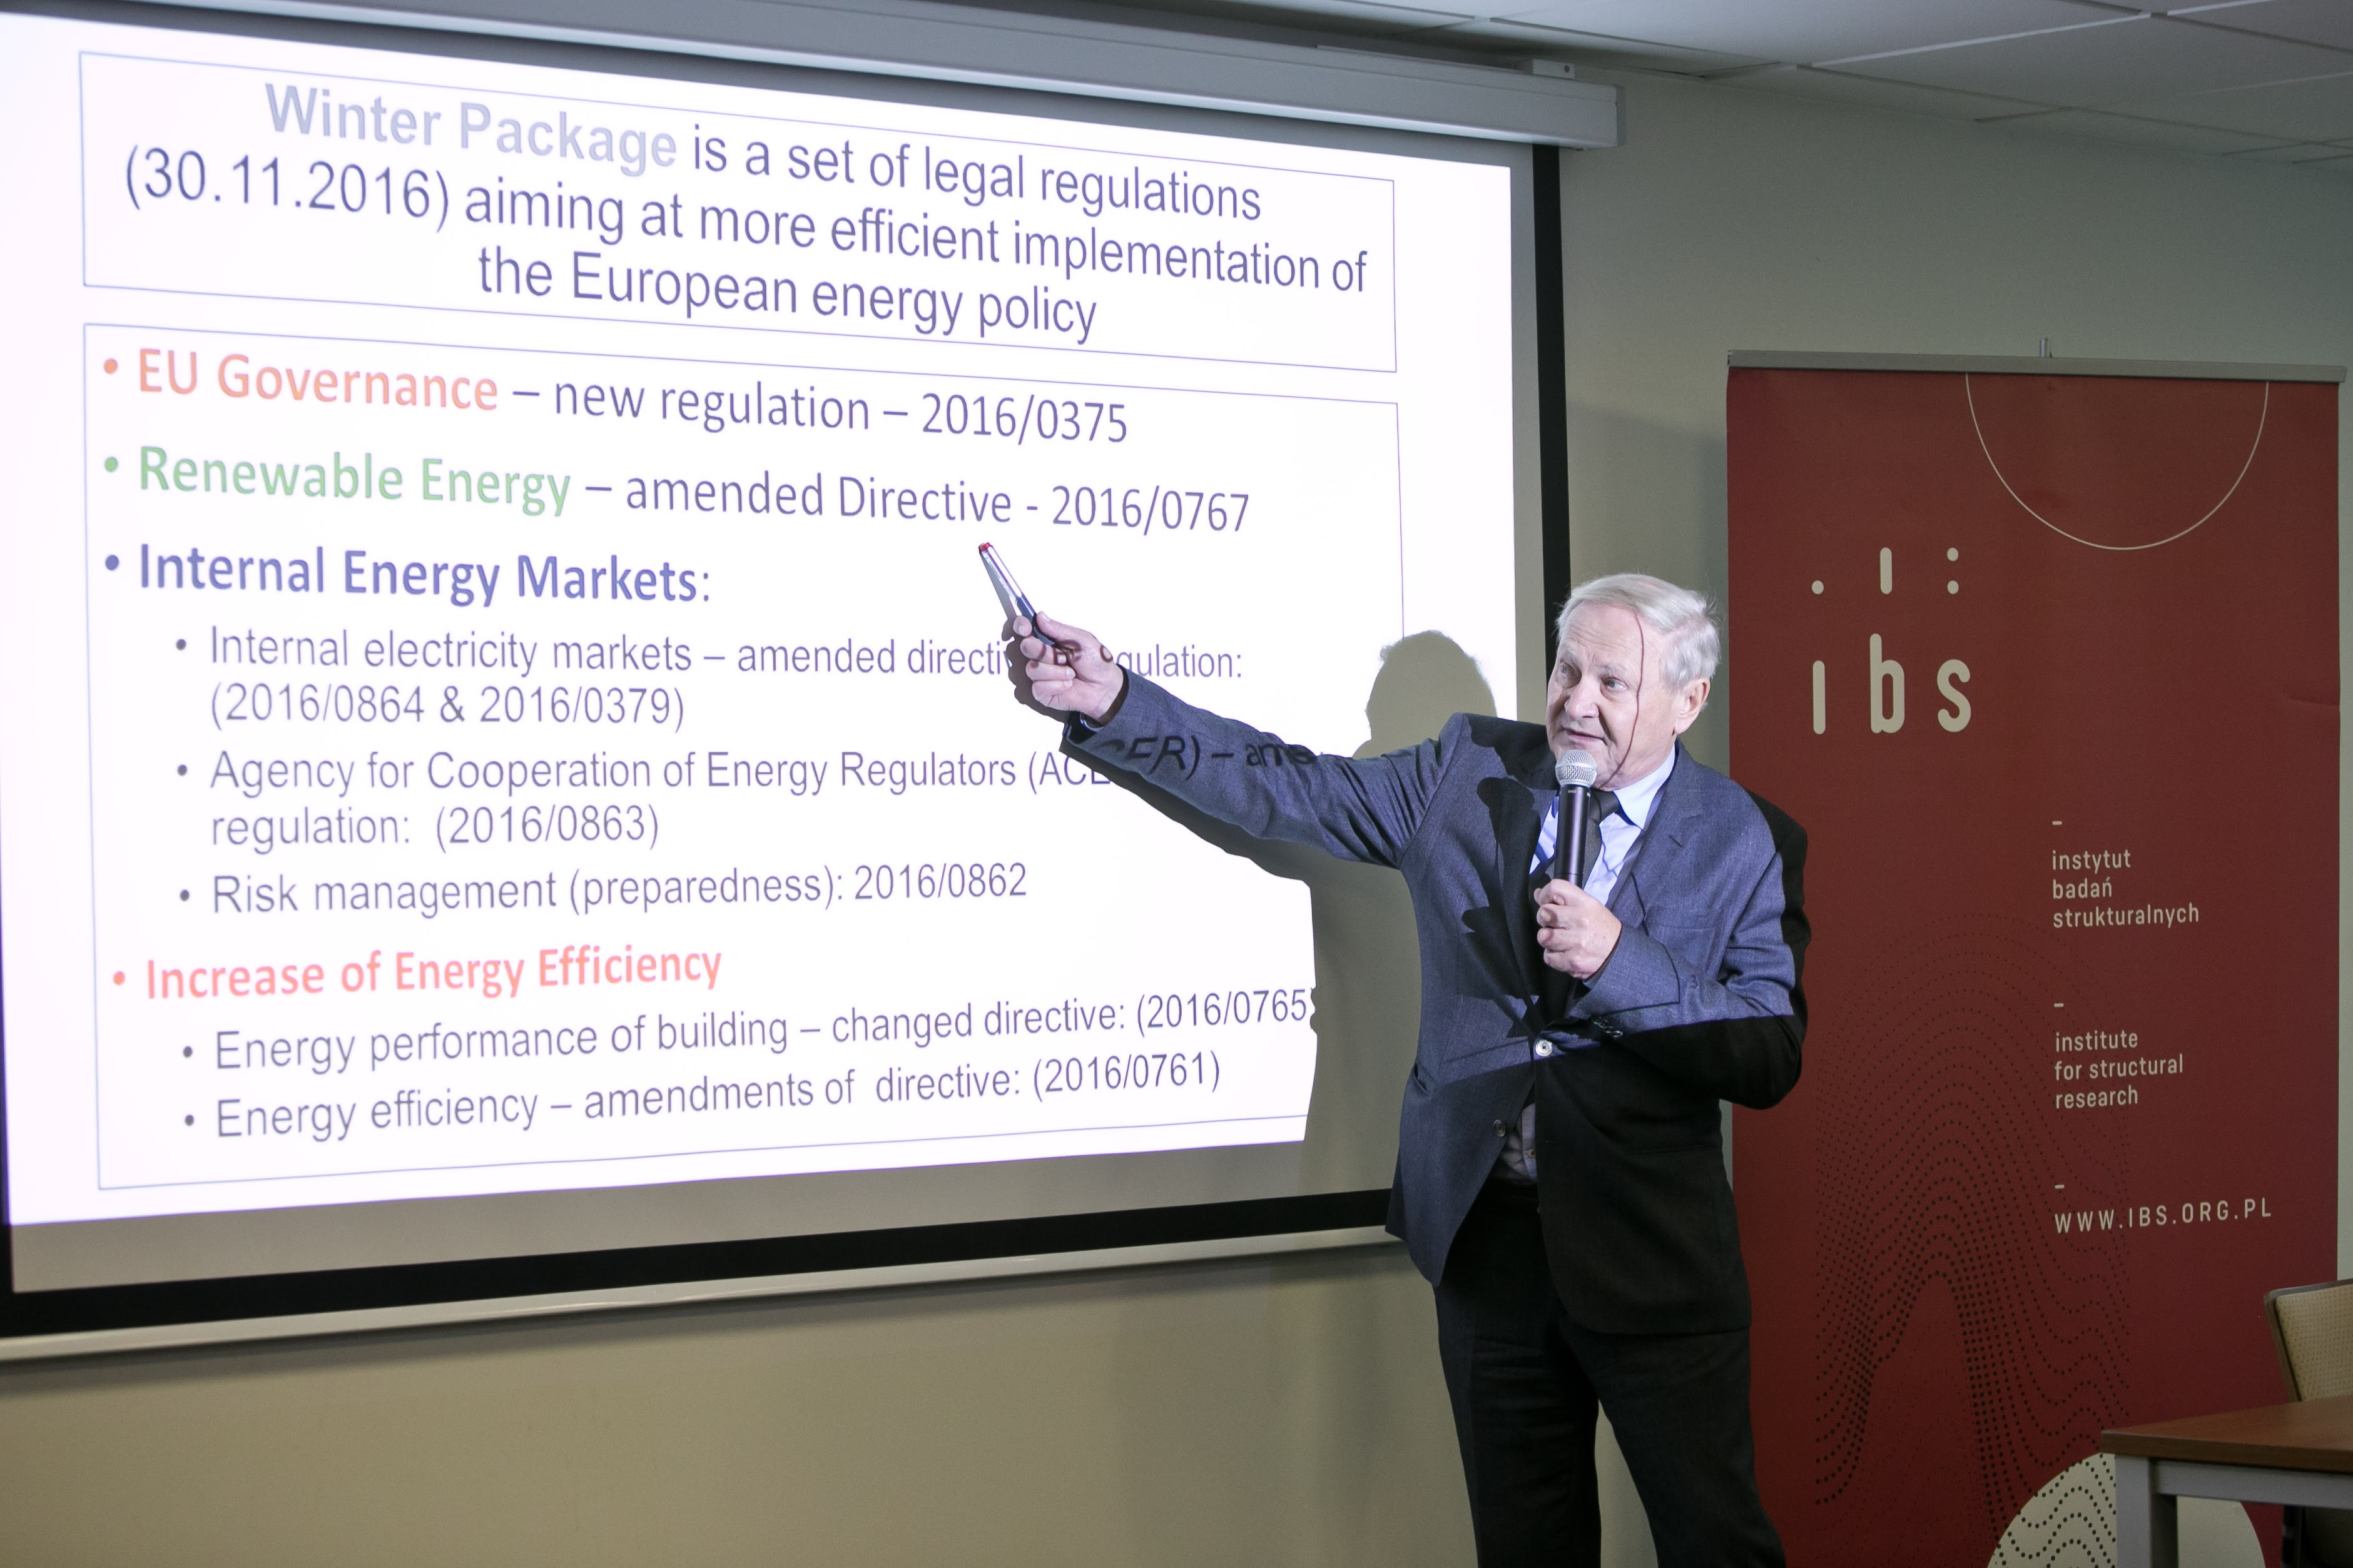 Prof. Władysław Mielczarski (Łódź University of Technology – PŁ) presenting the available transition pathways and the associated risks